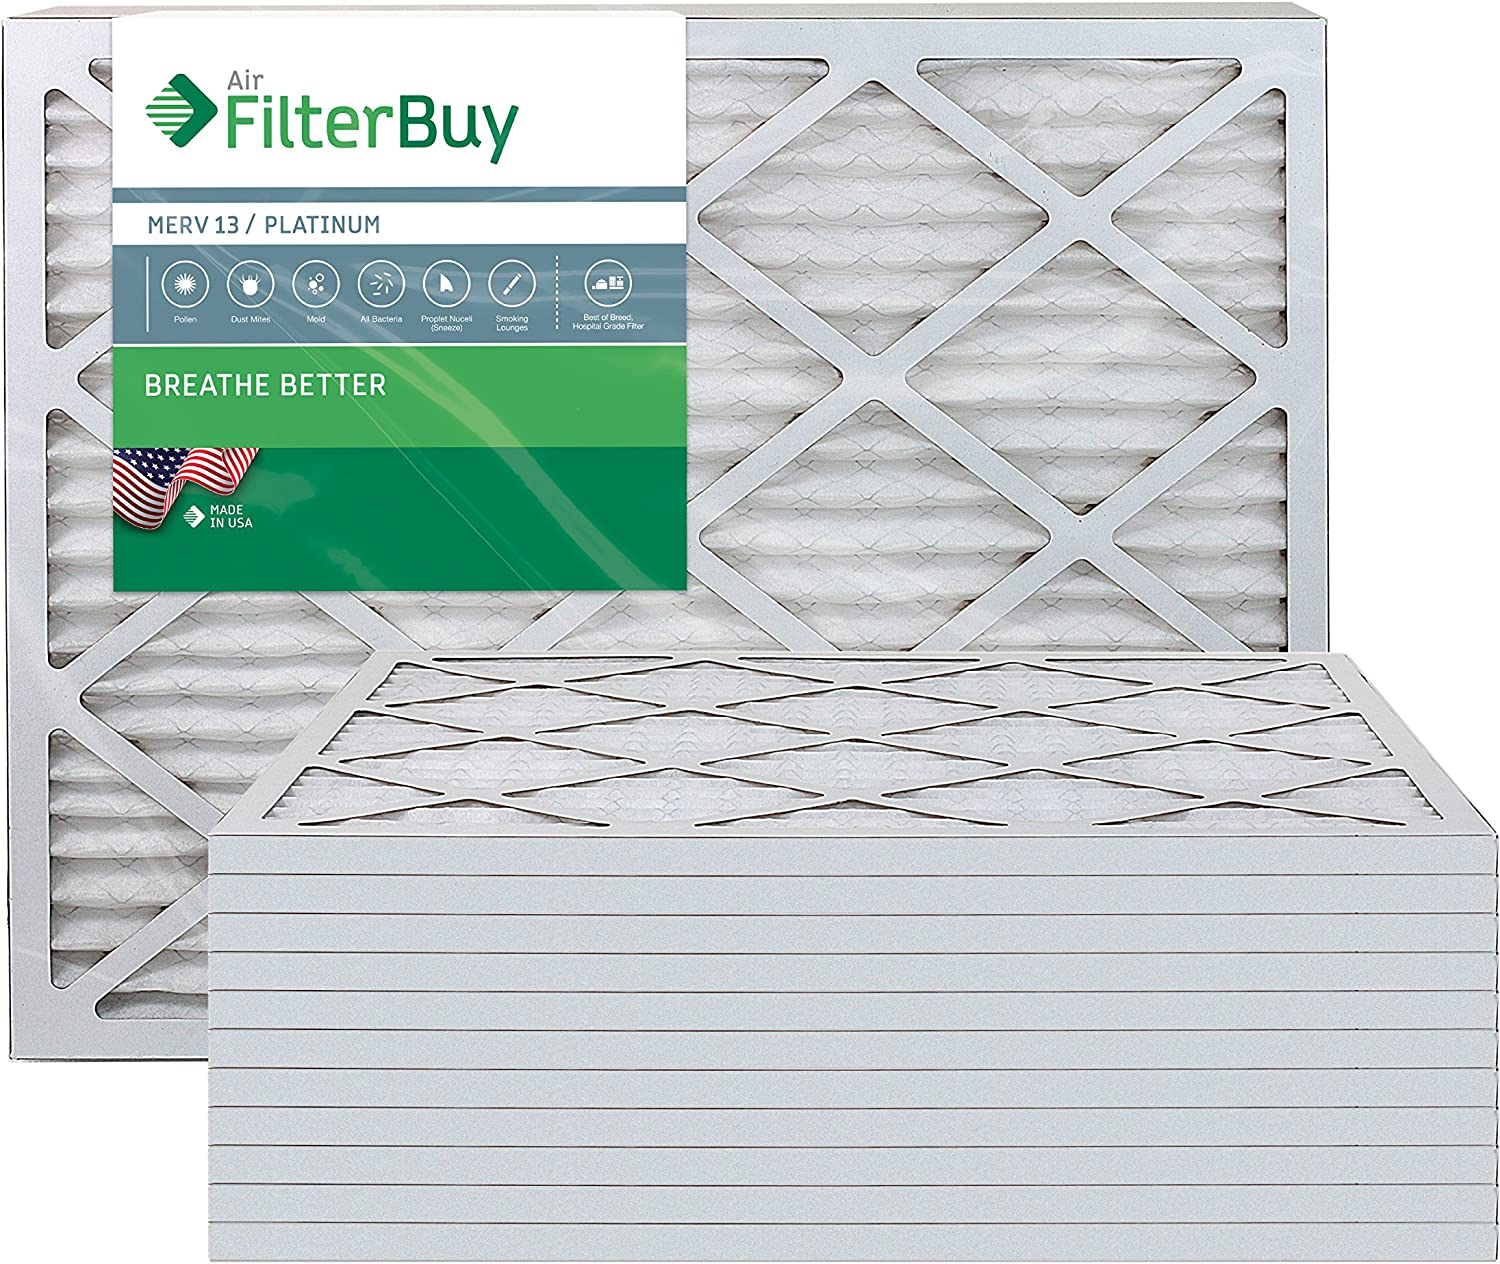 FilterBuy 24x30x1 MERV 13 Pleated AC Furnace Air Filter, (Pack of 12 Filters), 24x30x1 – Platinum